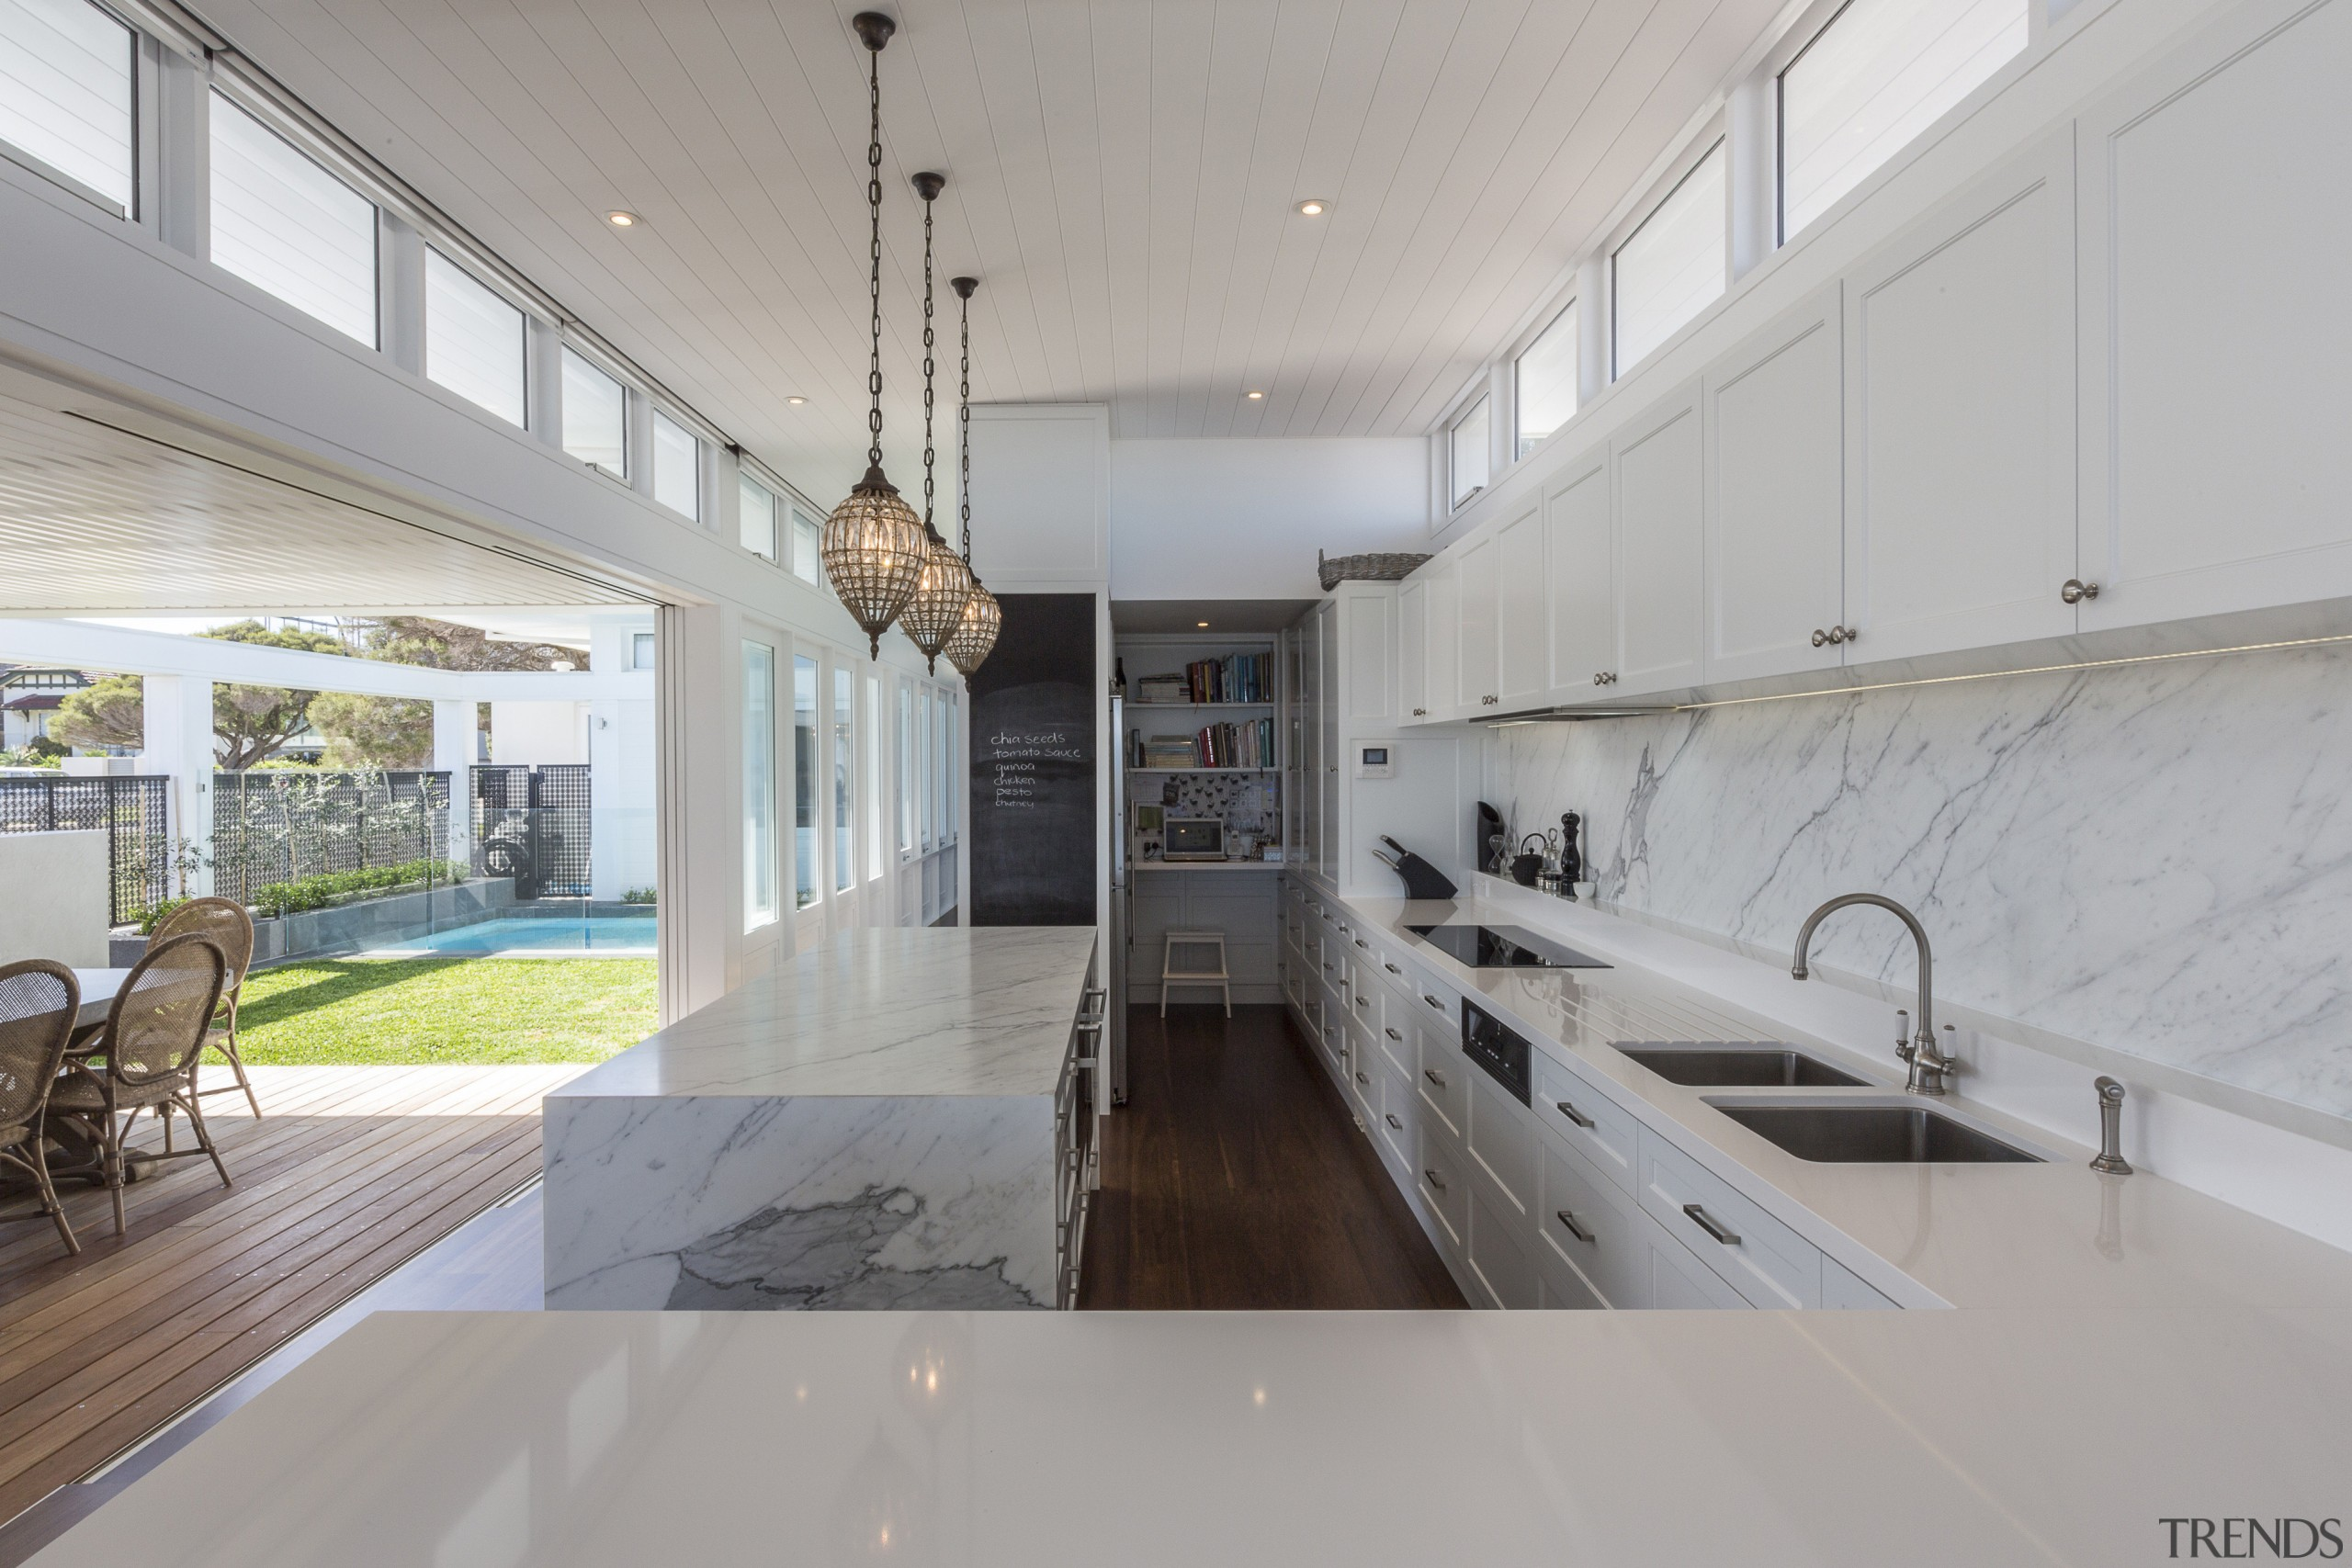 The kitchen and living area in this new architecture, countertop, house, interior design, real estate, gray